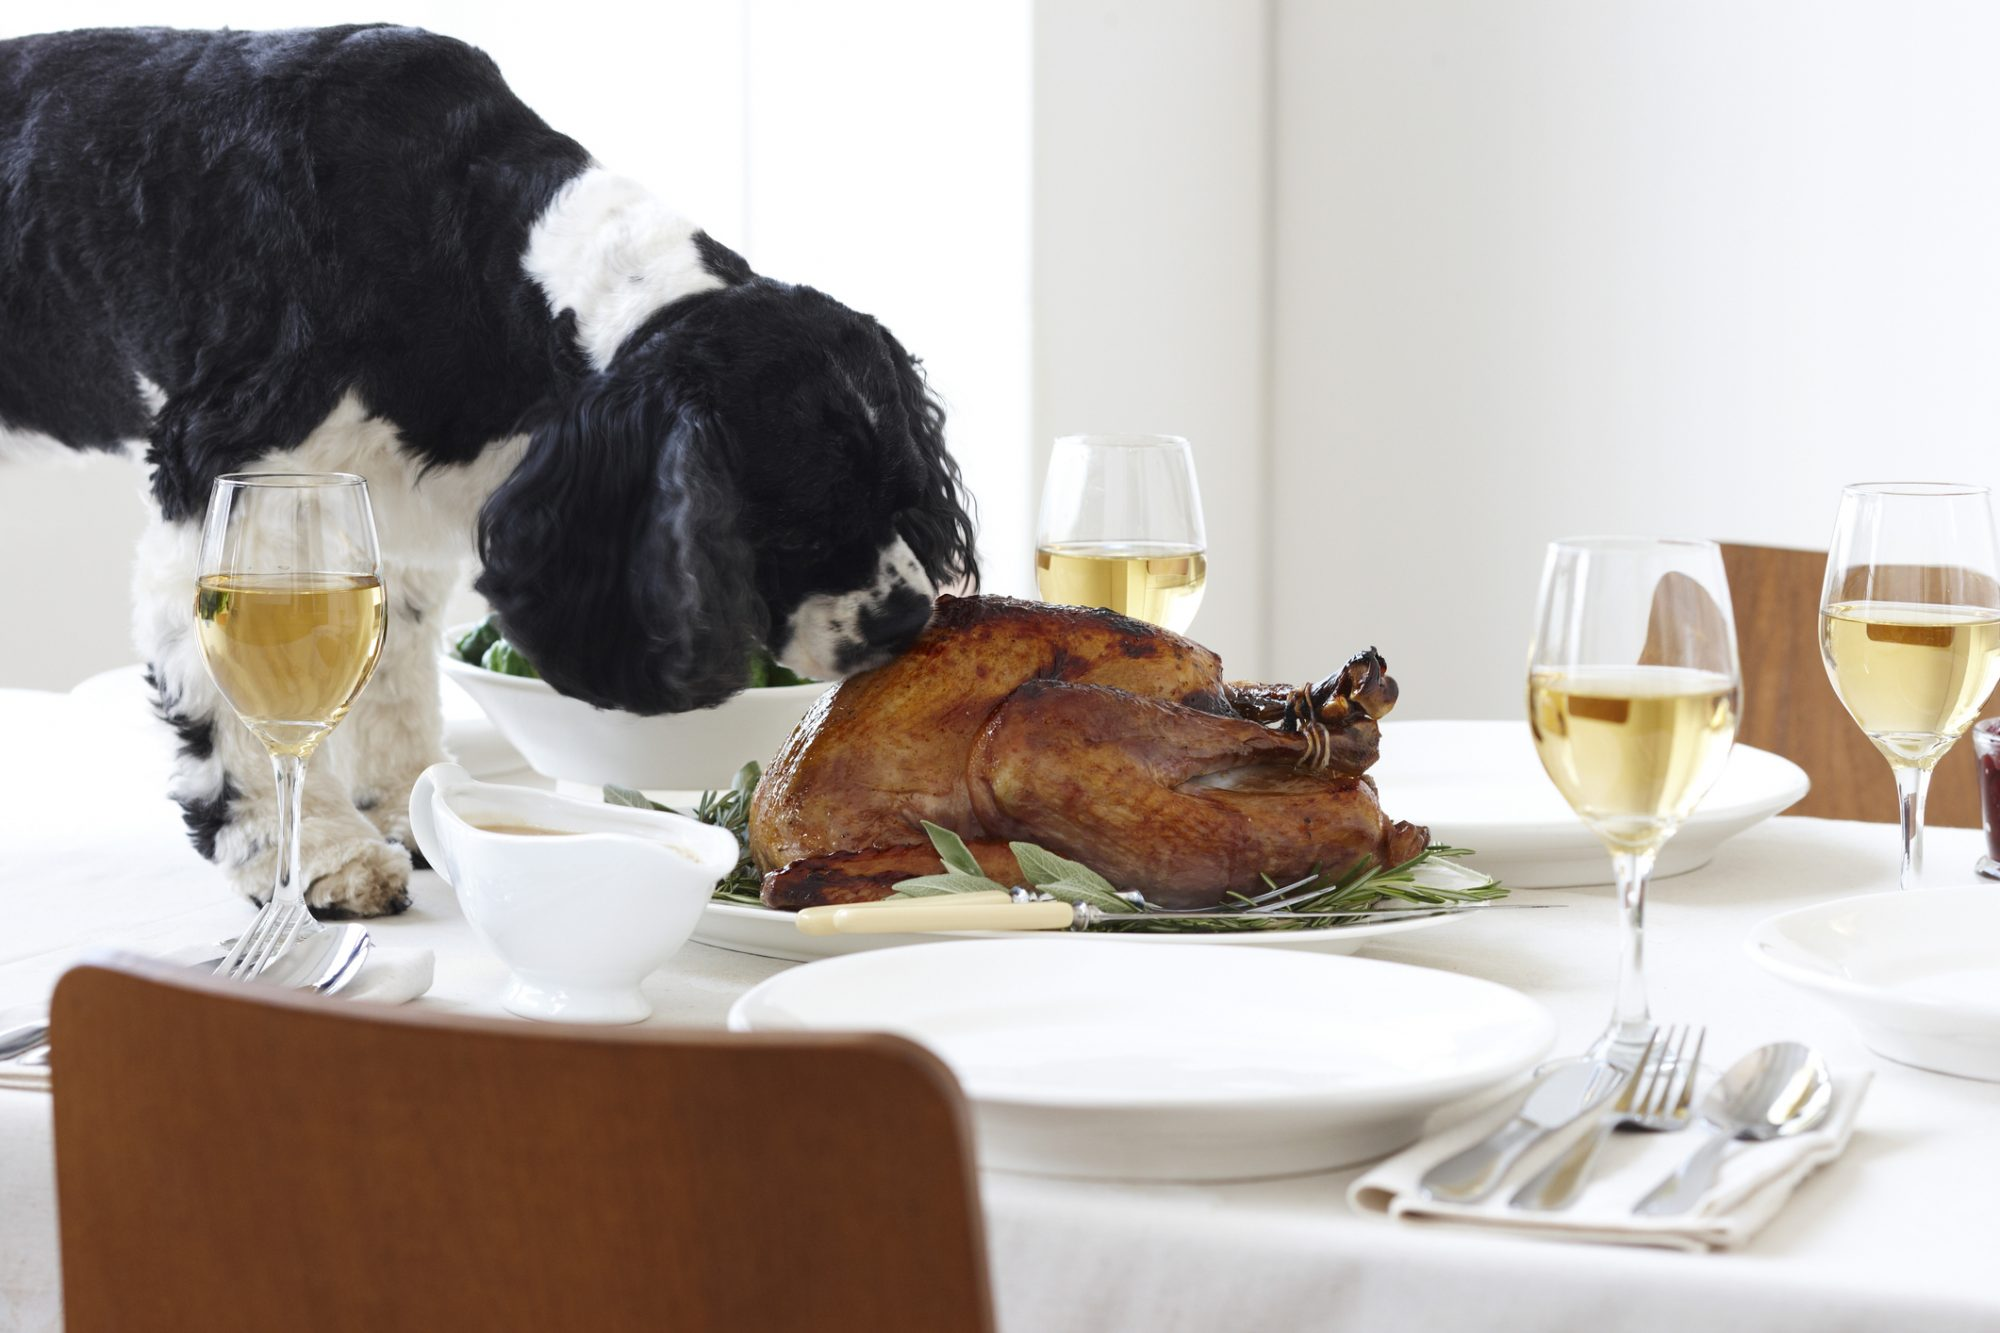 Dog Eating Thanksgiving Turkey